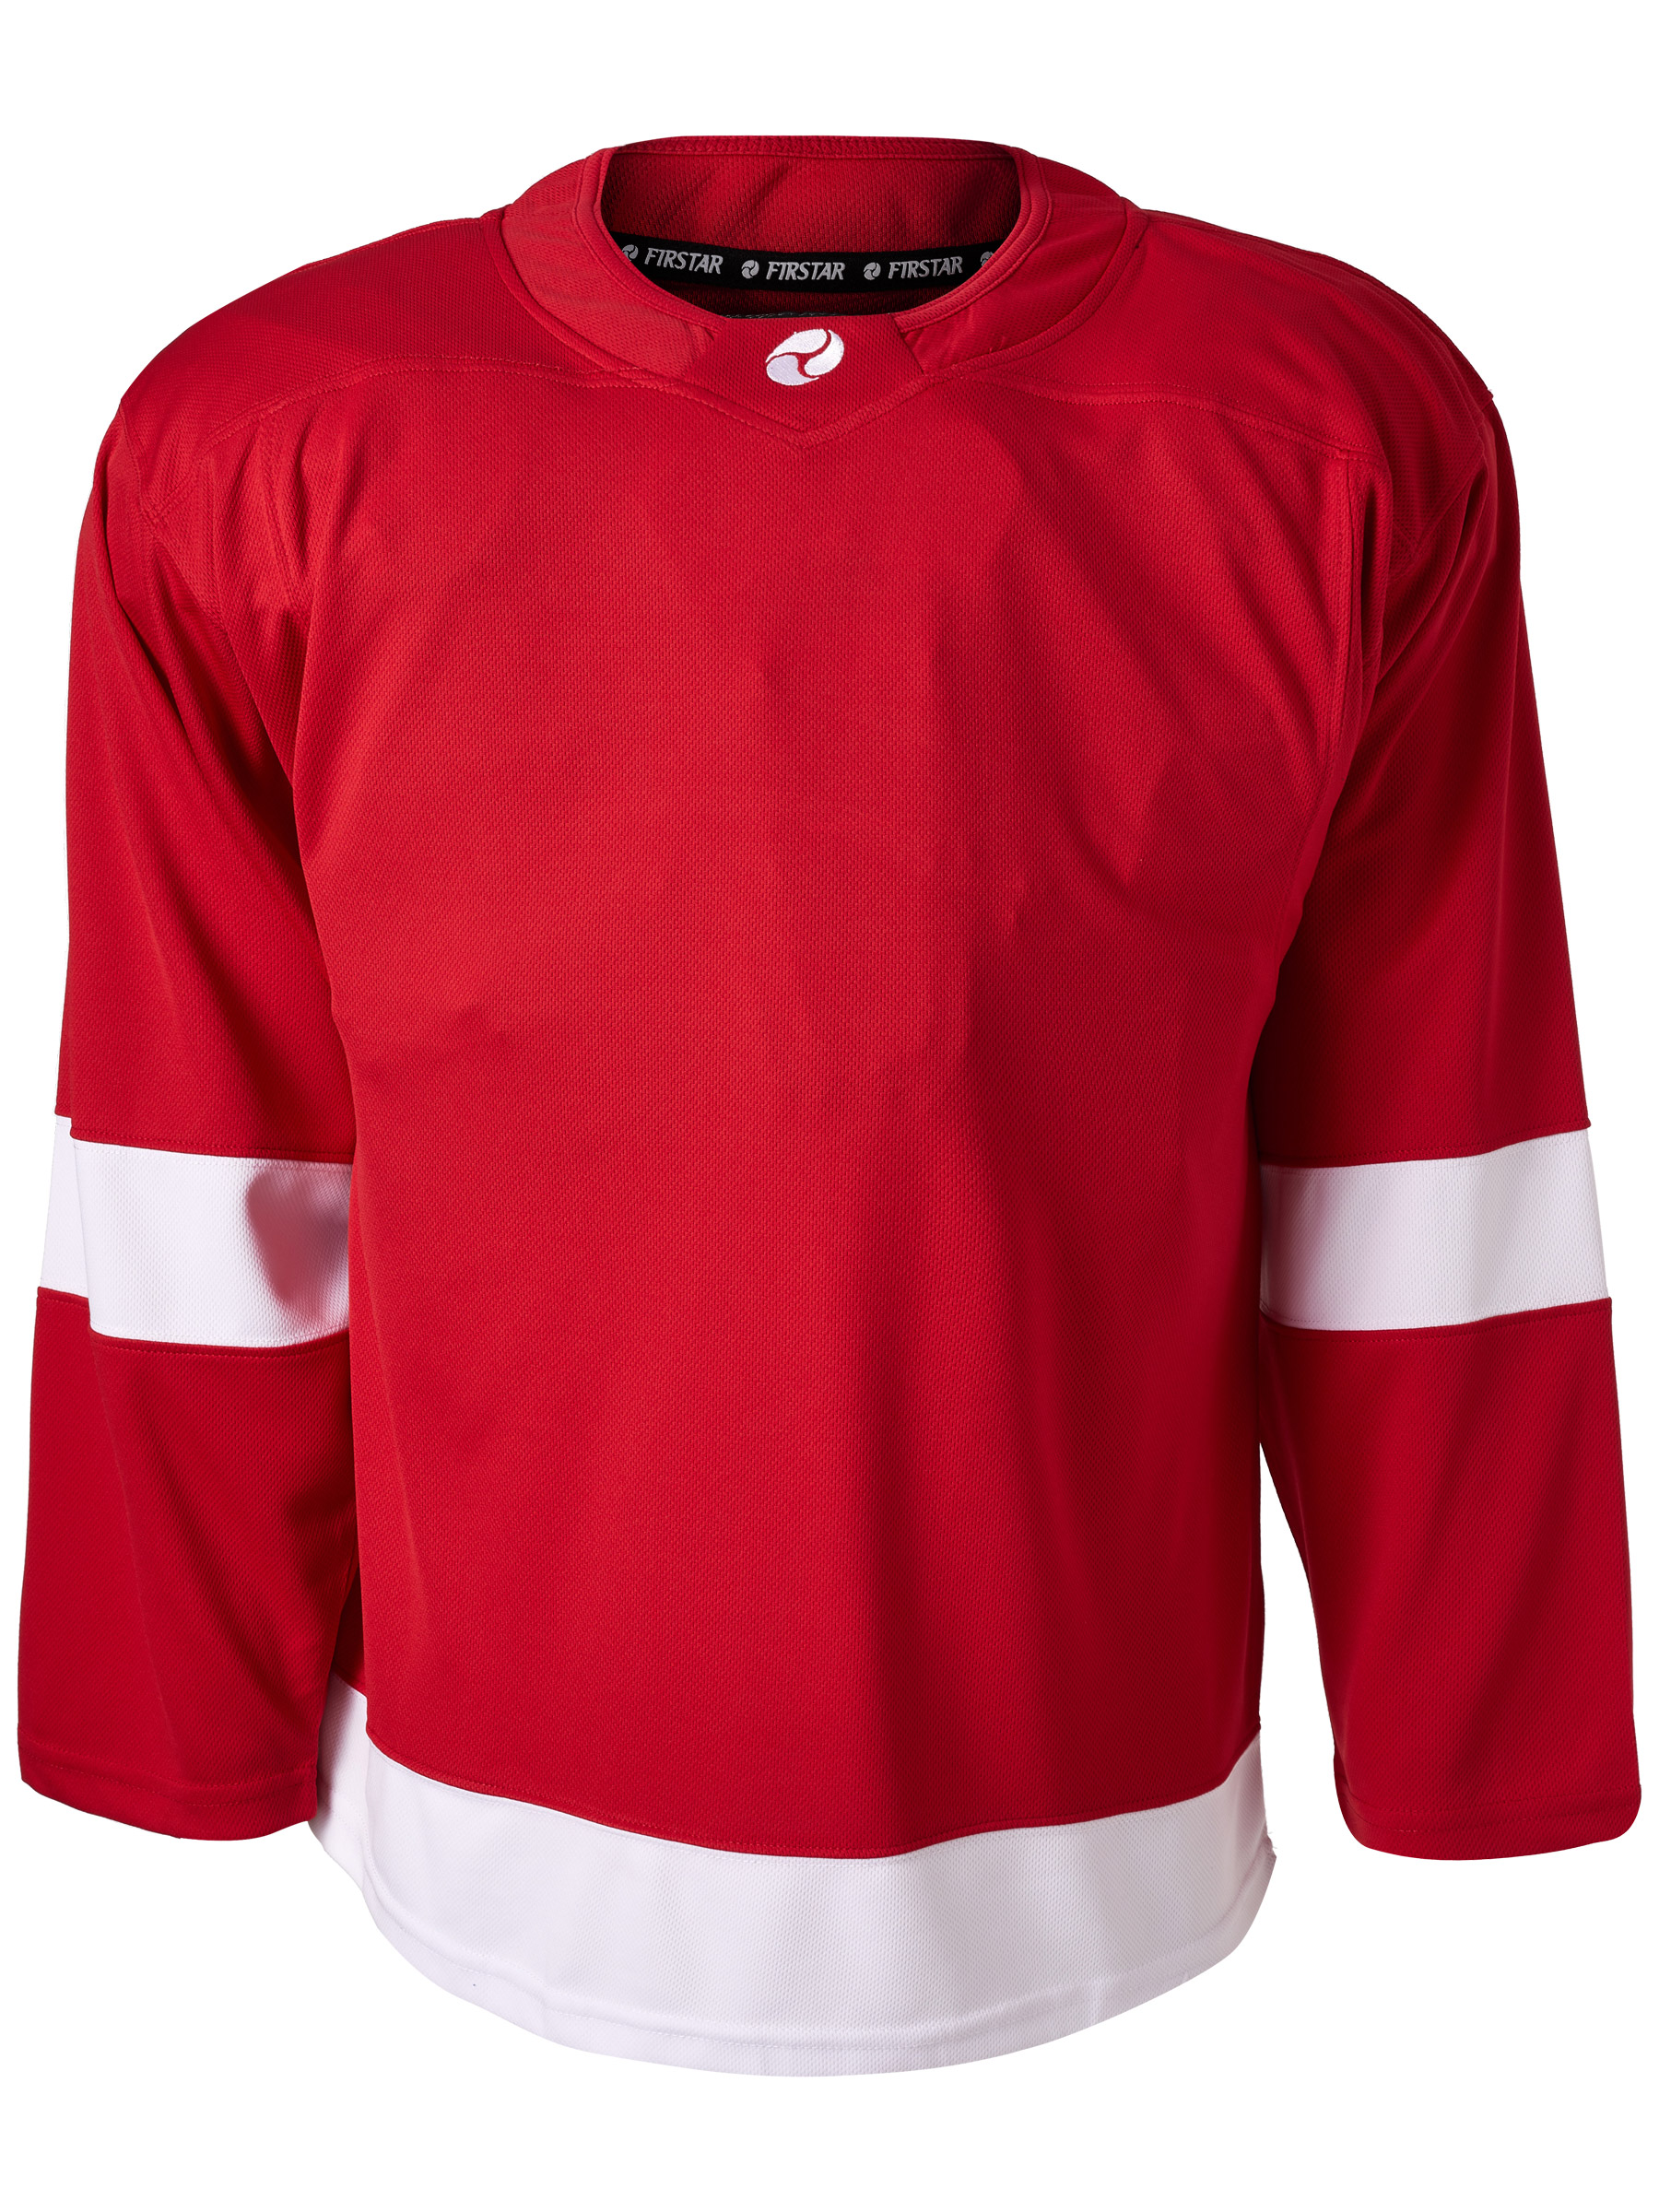 Firstar-Gamewear-Jersey-Detroit-Red.jpeg